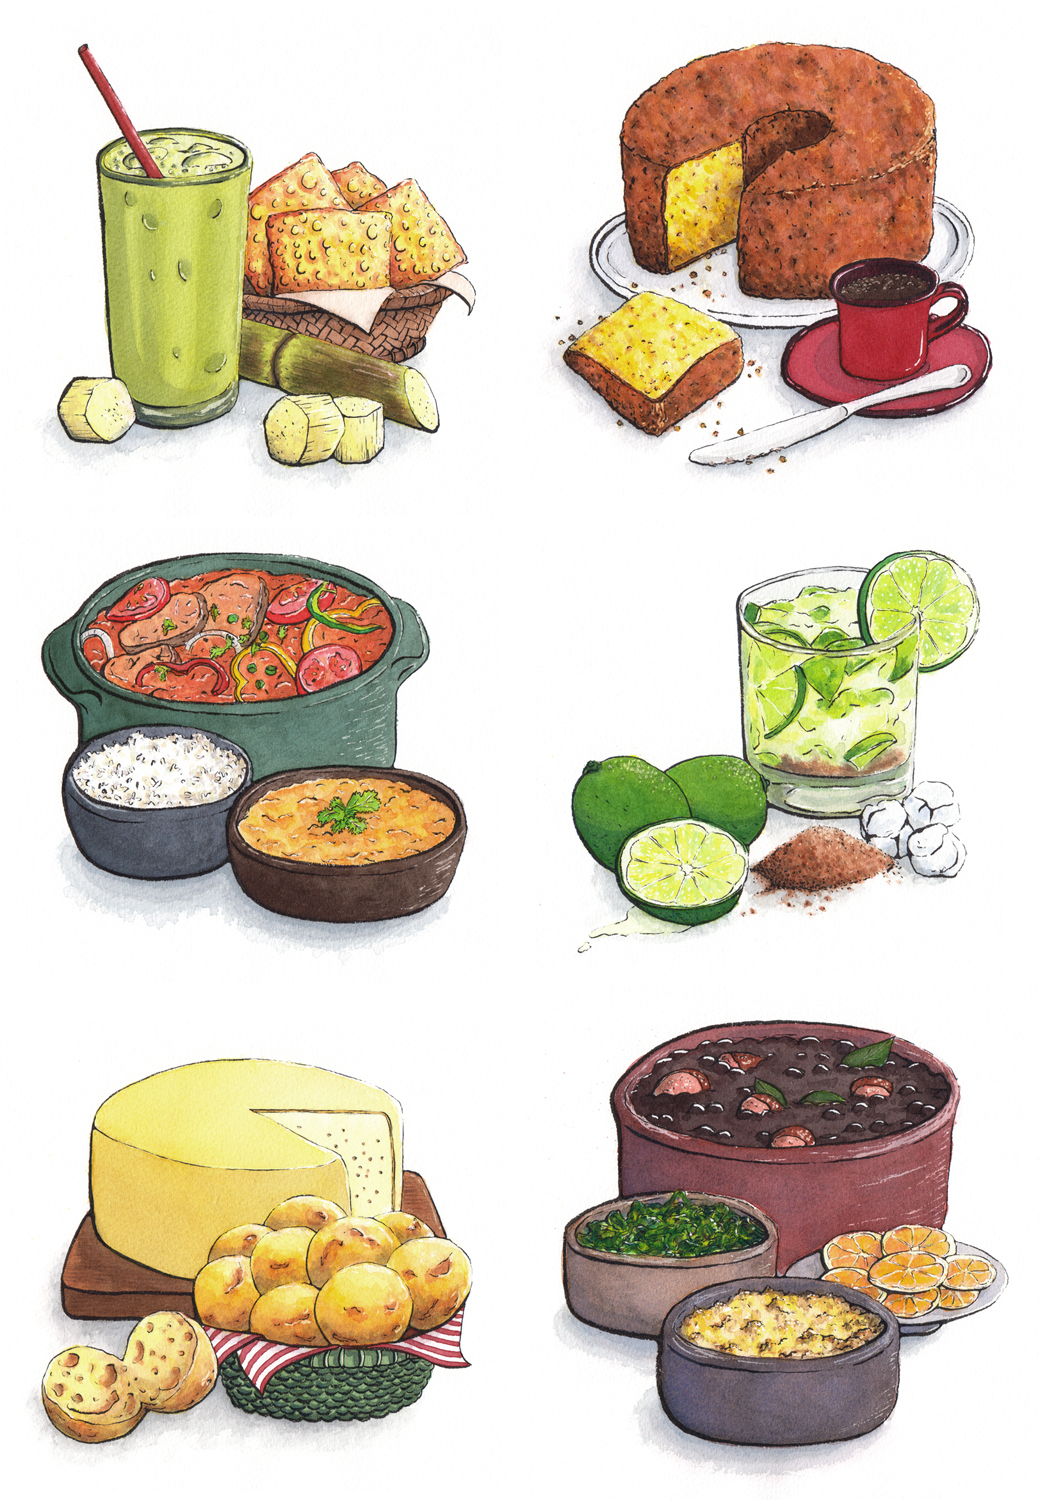 Brazilian Food Illustrations